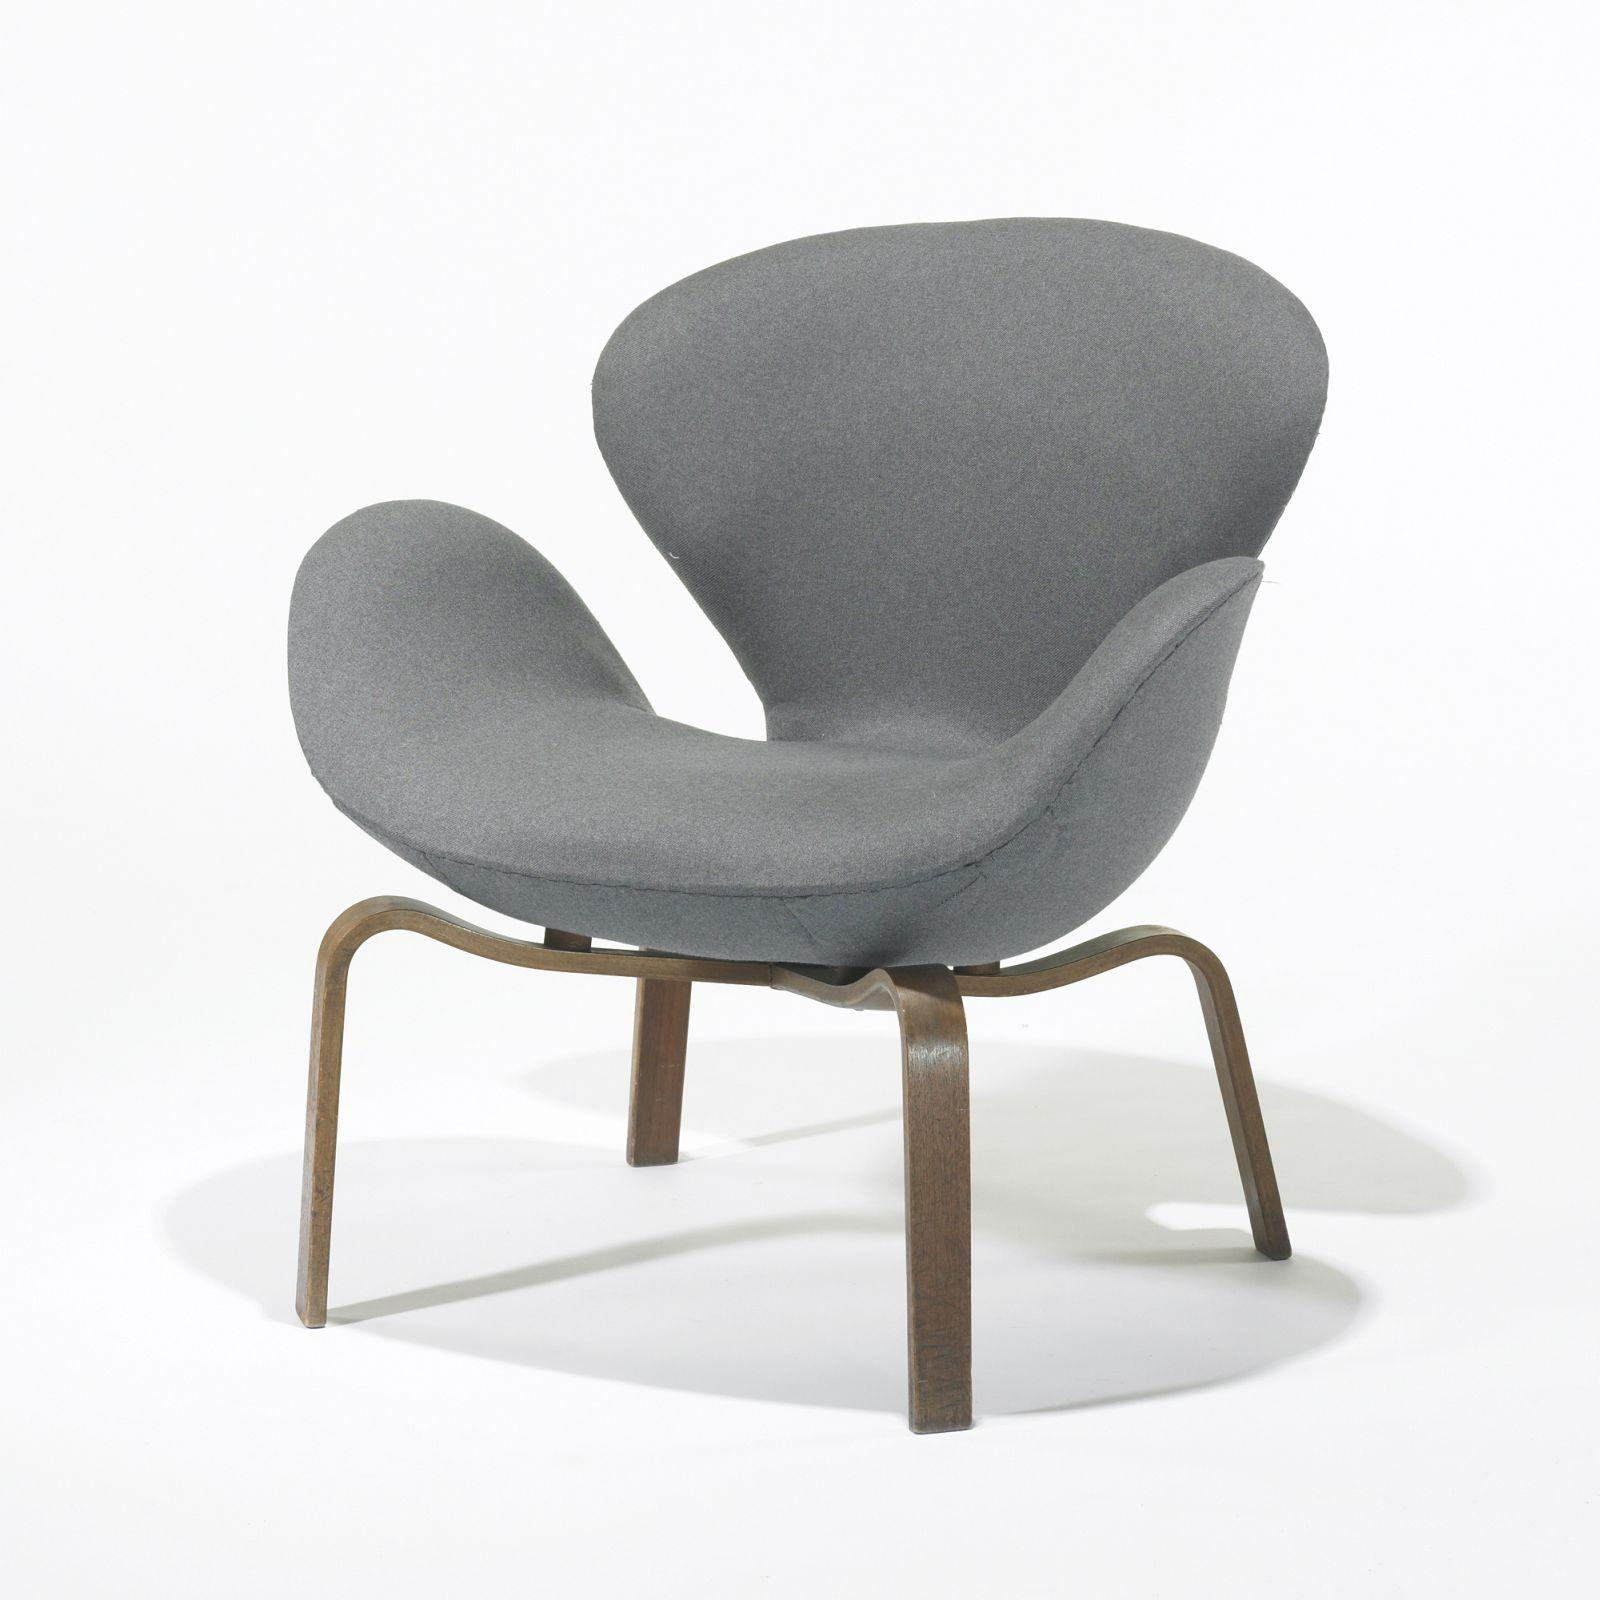 Arne Jacobsen Swan Chair Arne Jacobsen Swan Chair, Model 4325